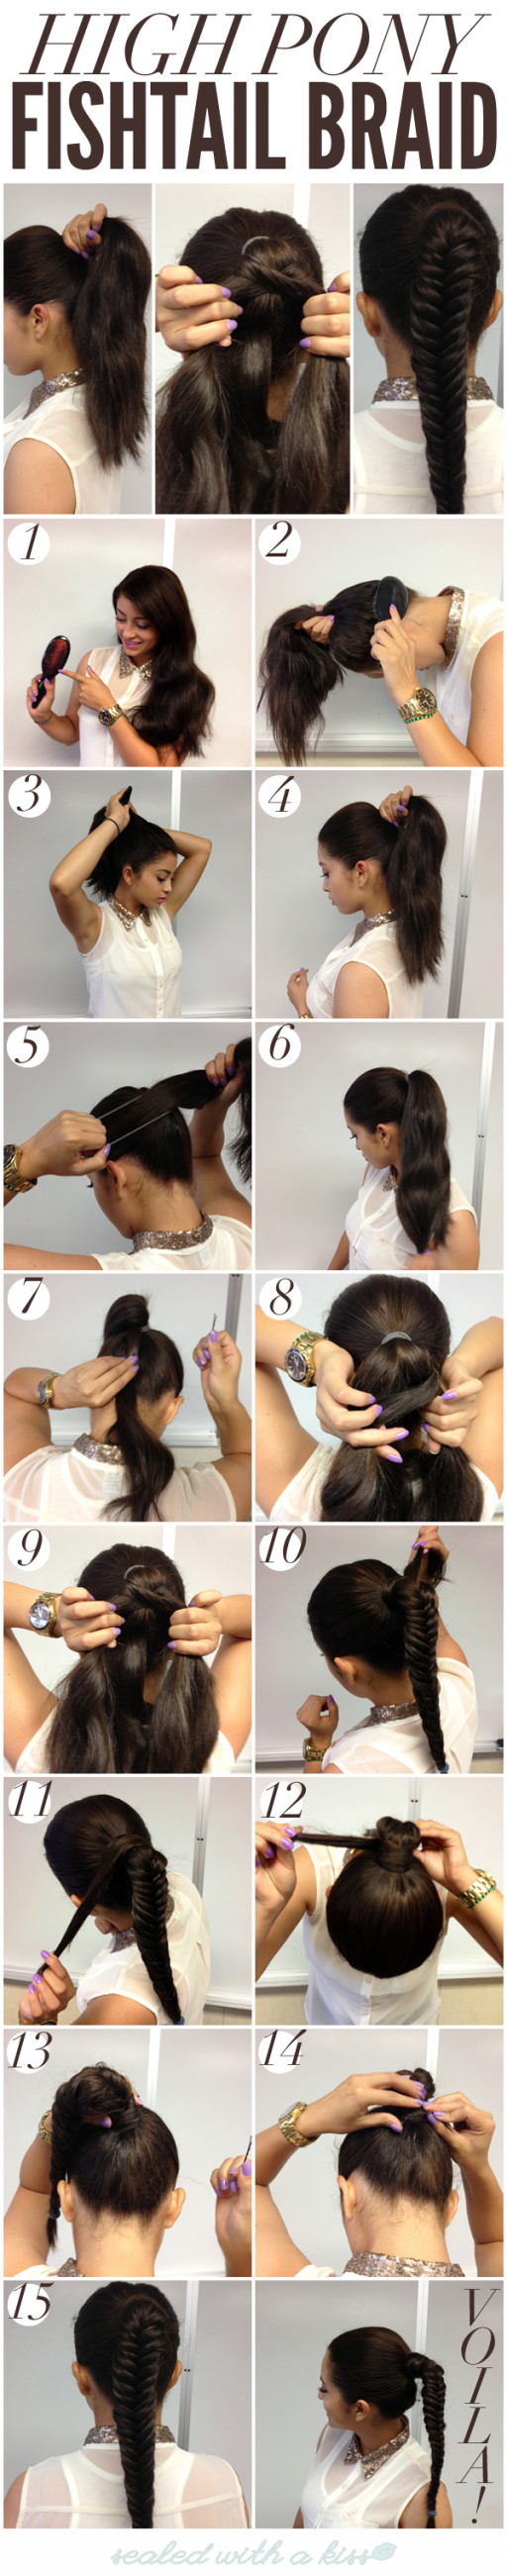 How to do DIY high pony fish tail braid hairstyle step by step tutorial instructions